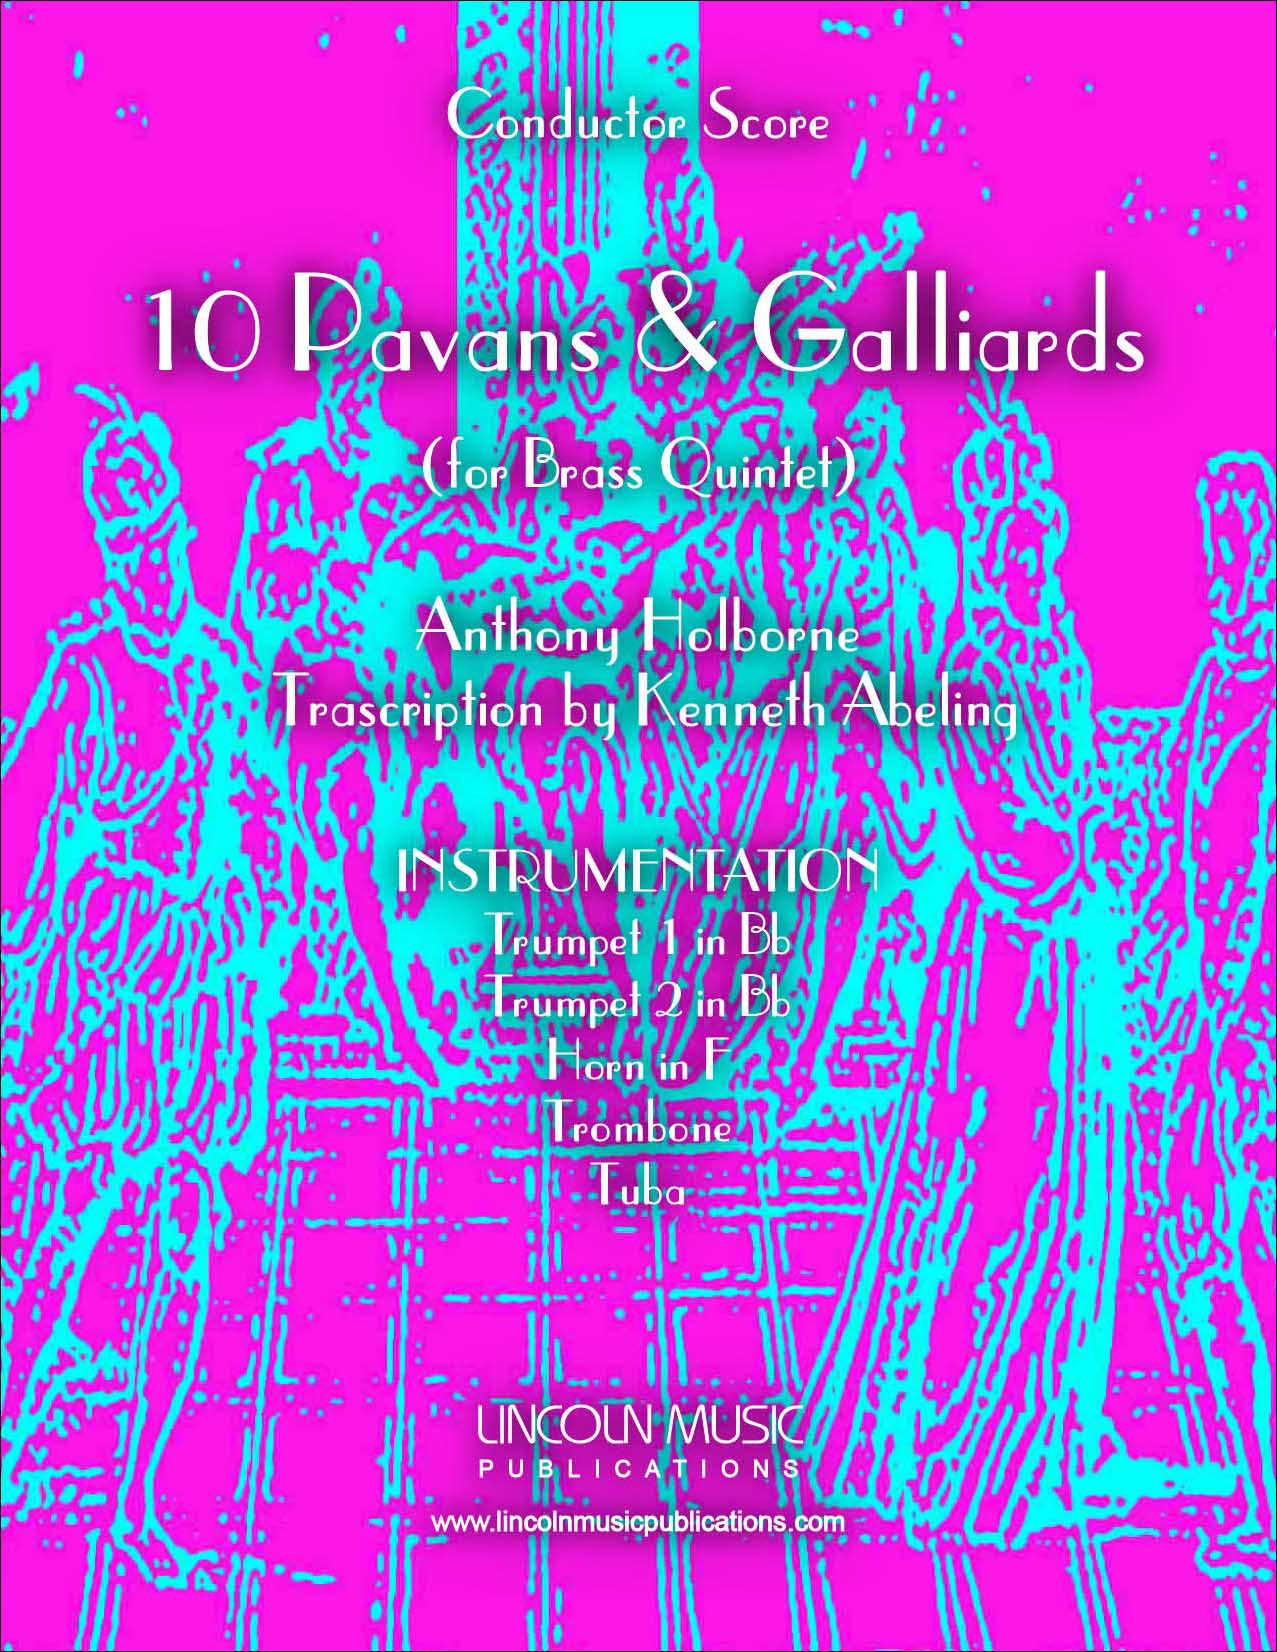 10 Pavans & Galliards